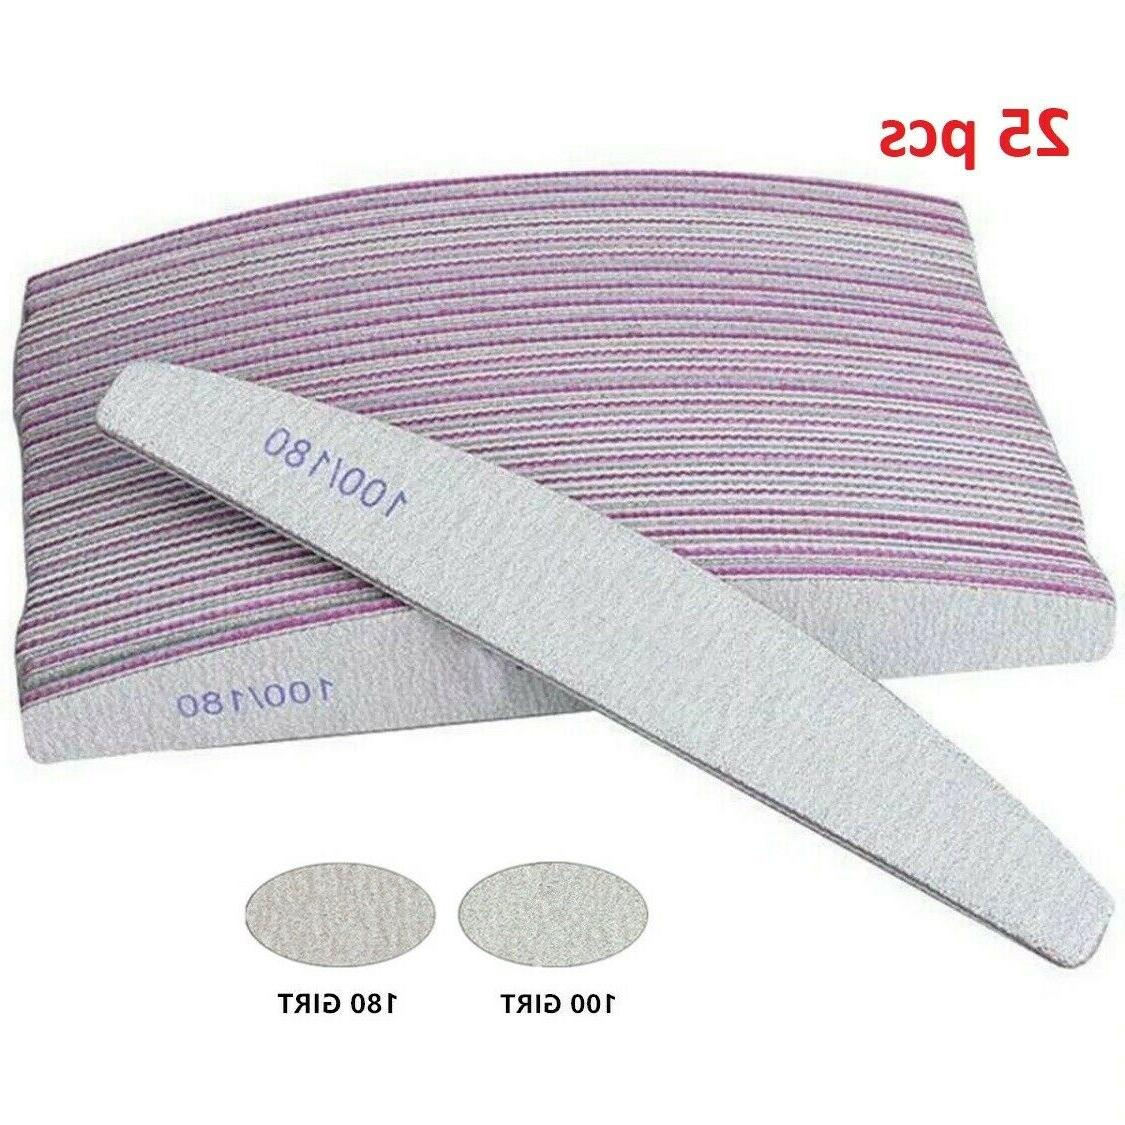 25pcs nail files 100 180 double sided